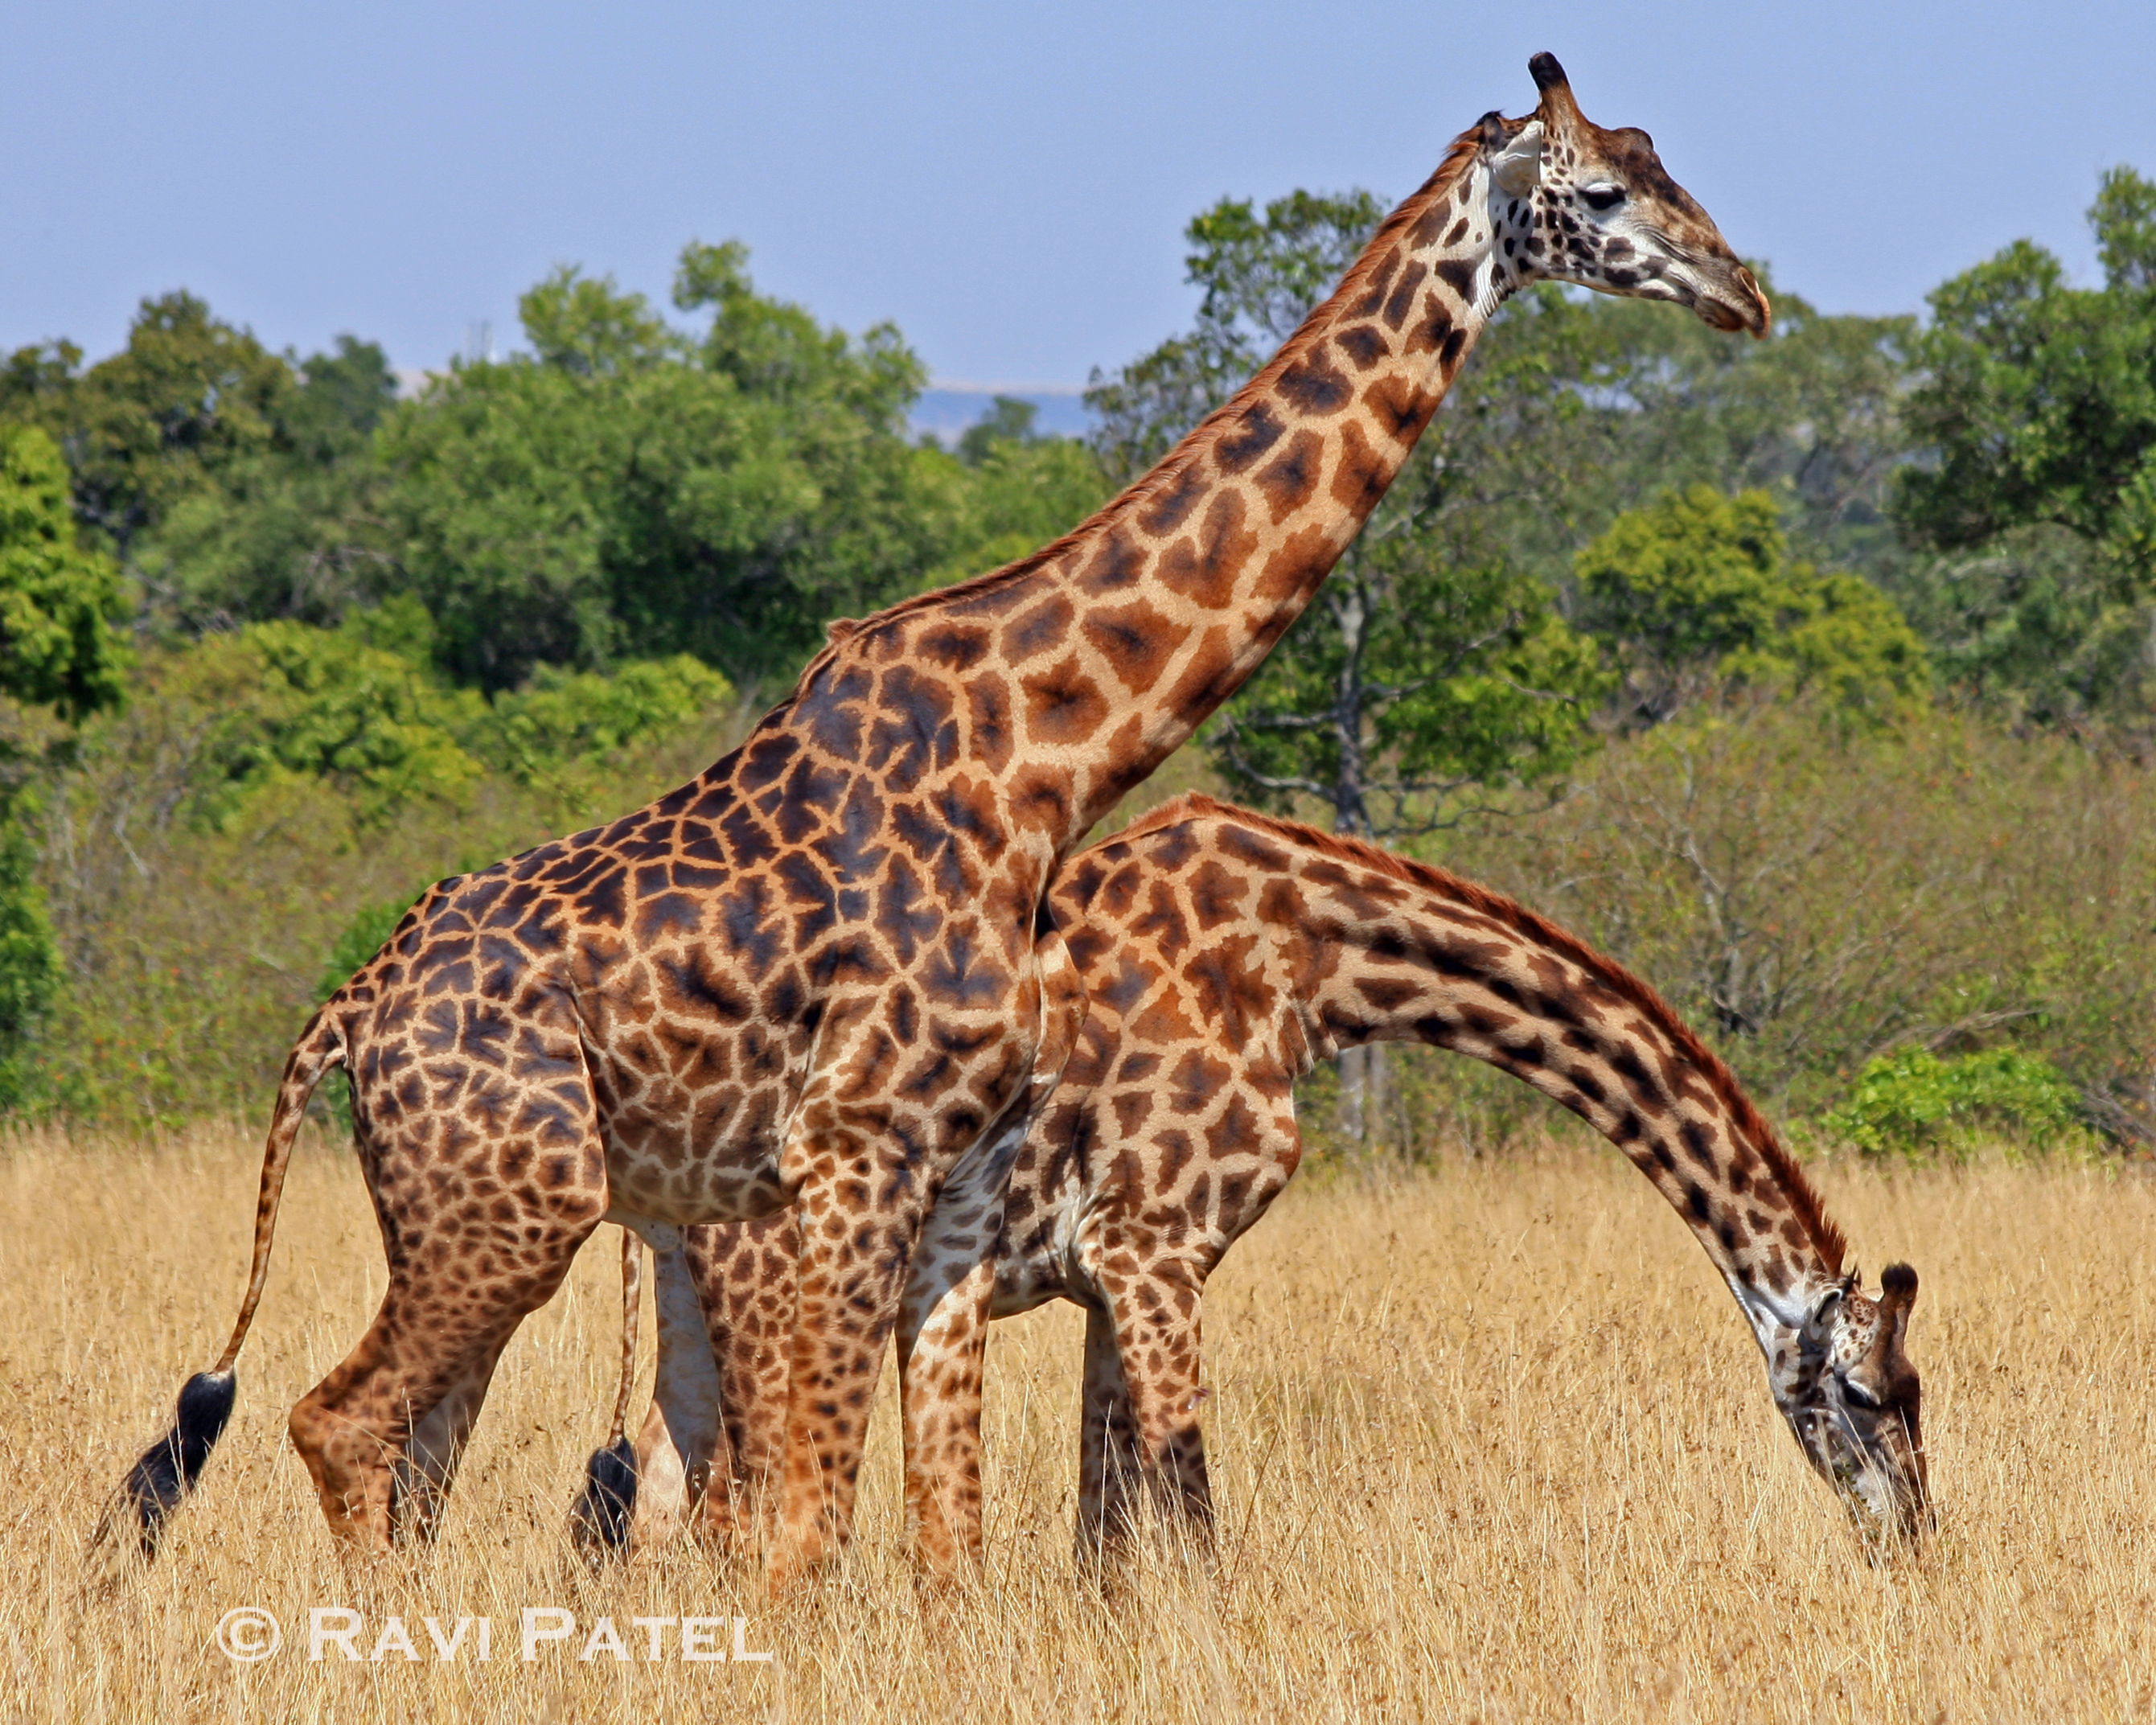 Giraffe - 12 photo